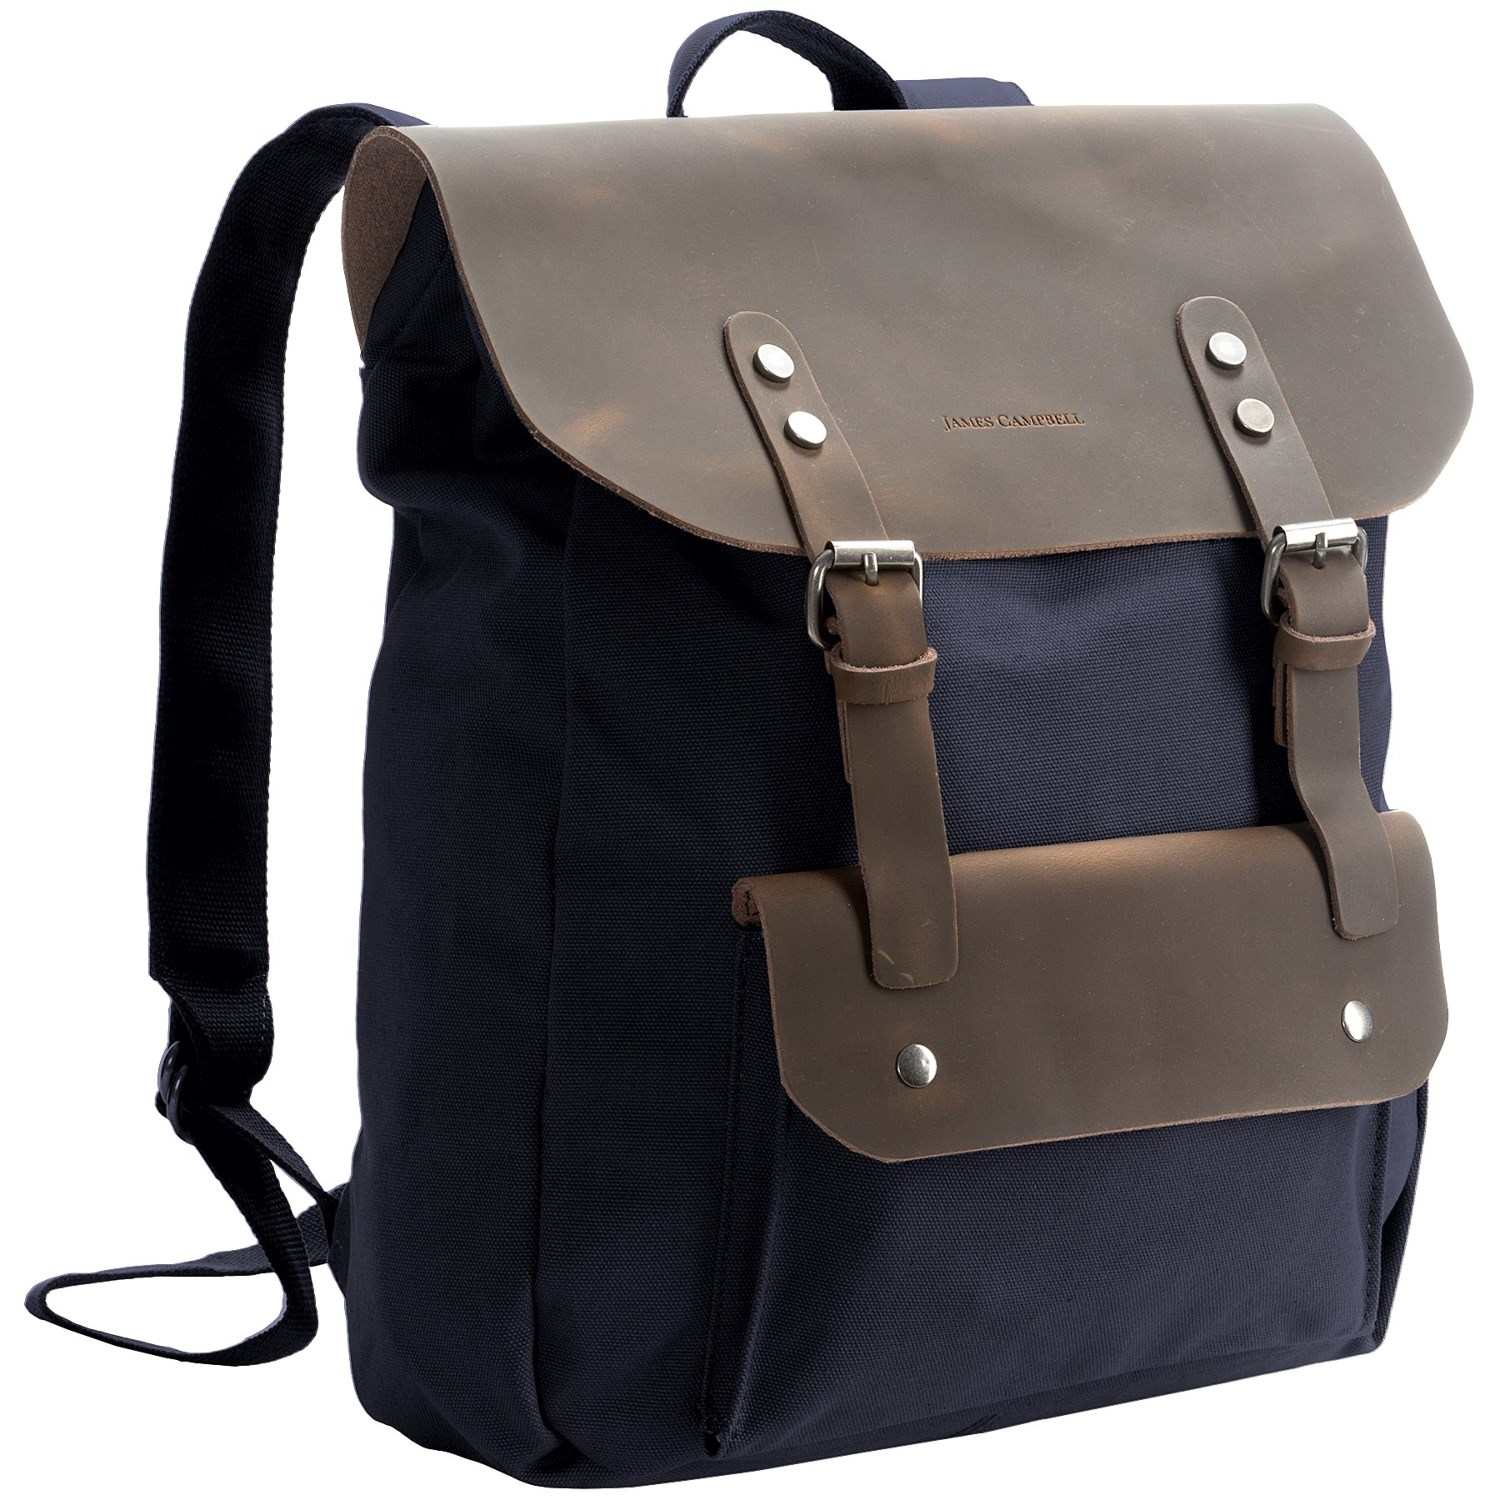 Cheap Leather Backpack - Top Reviewed Backpacks